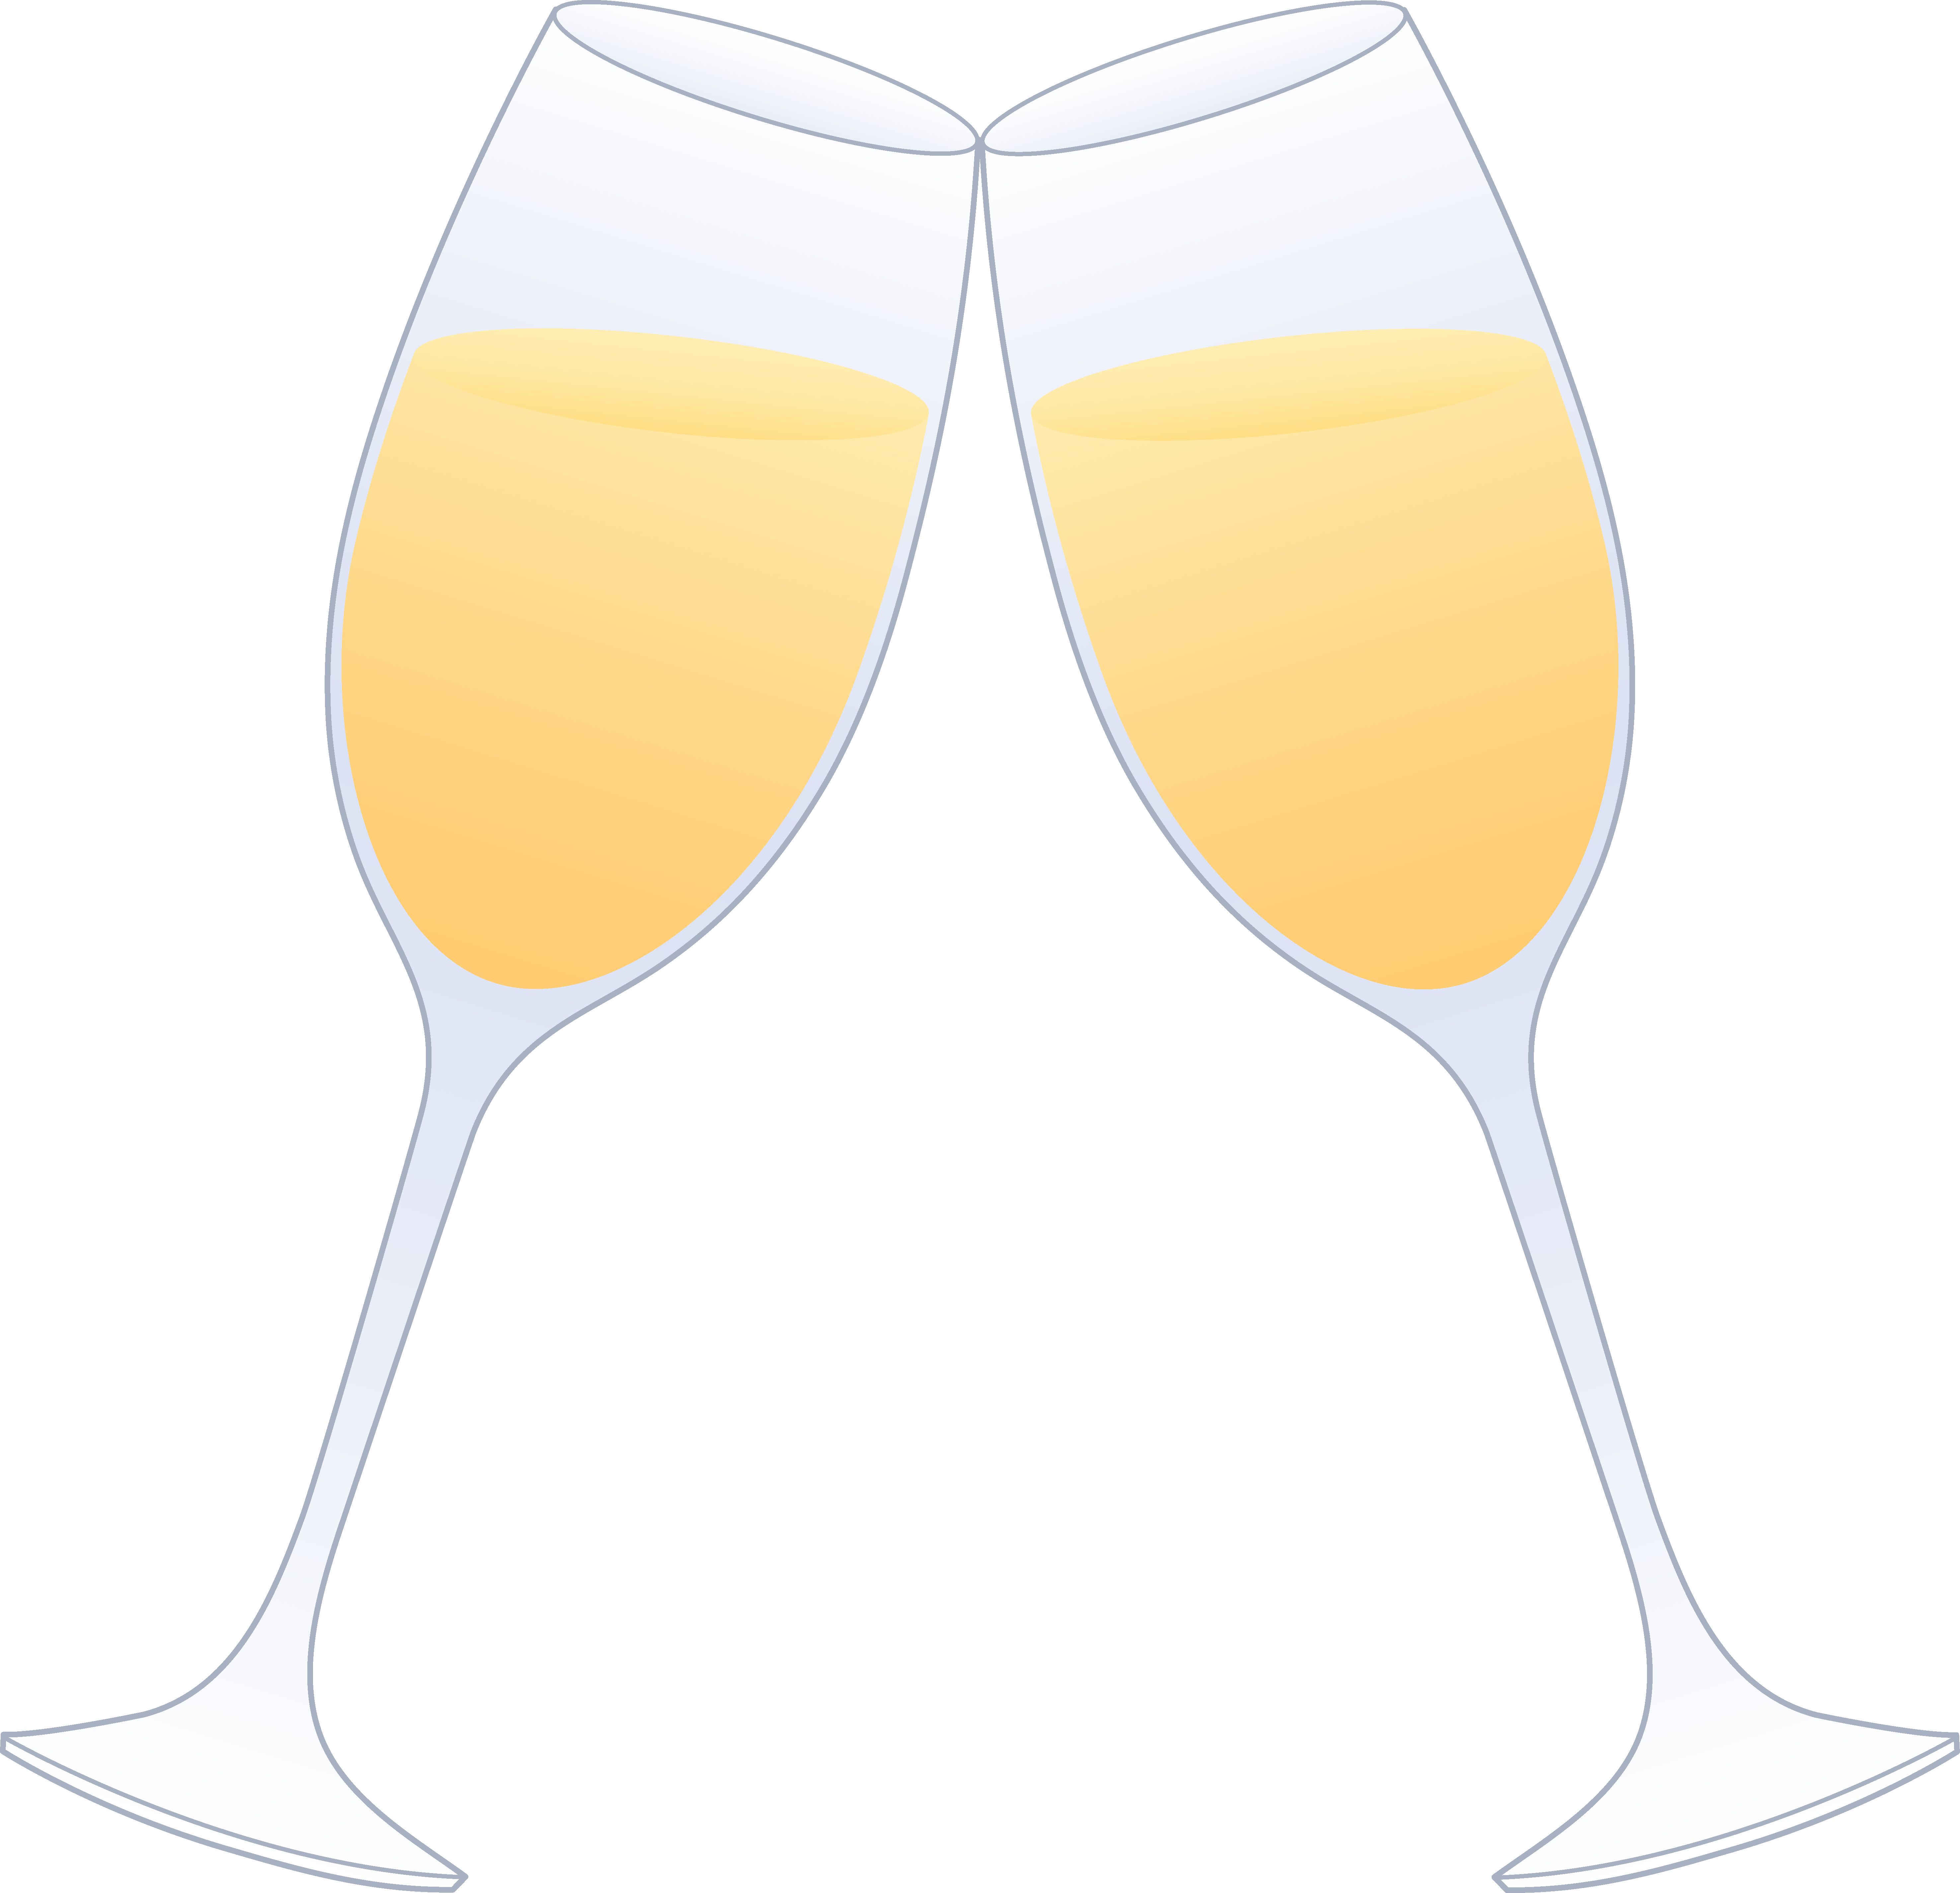 Champagne glass glasses of champagne clinking free clip art 2